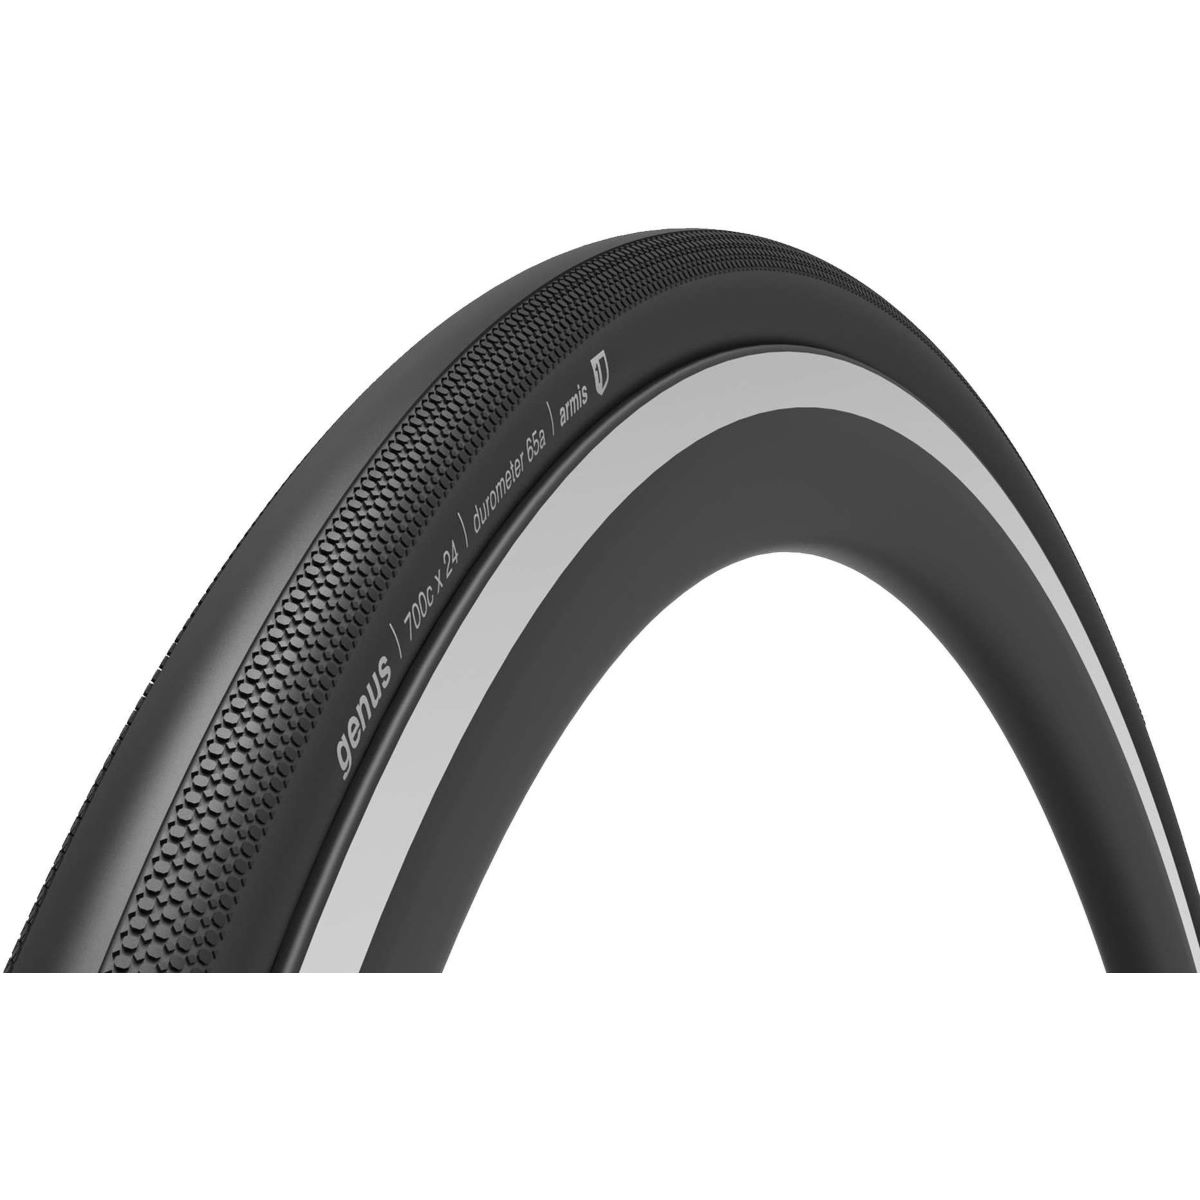 Ere Research Ere Research Genus Clincher 120TPI Folding Road Tyre   Tyres